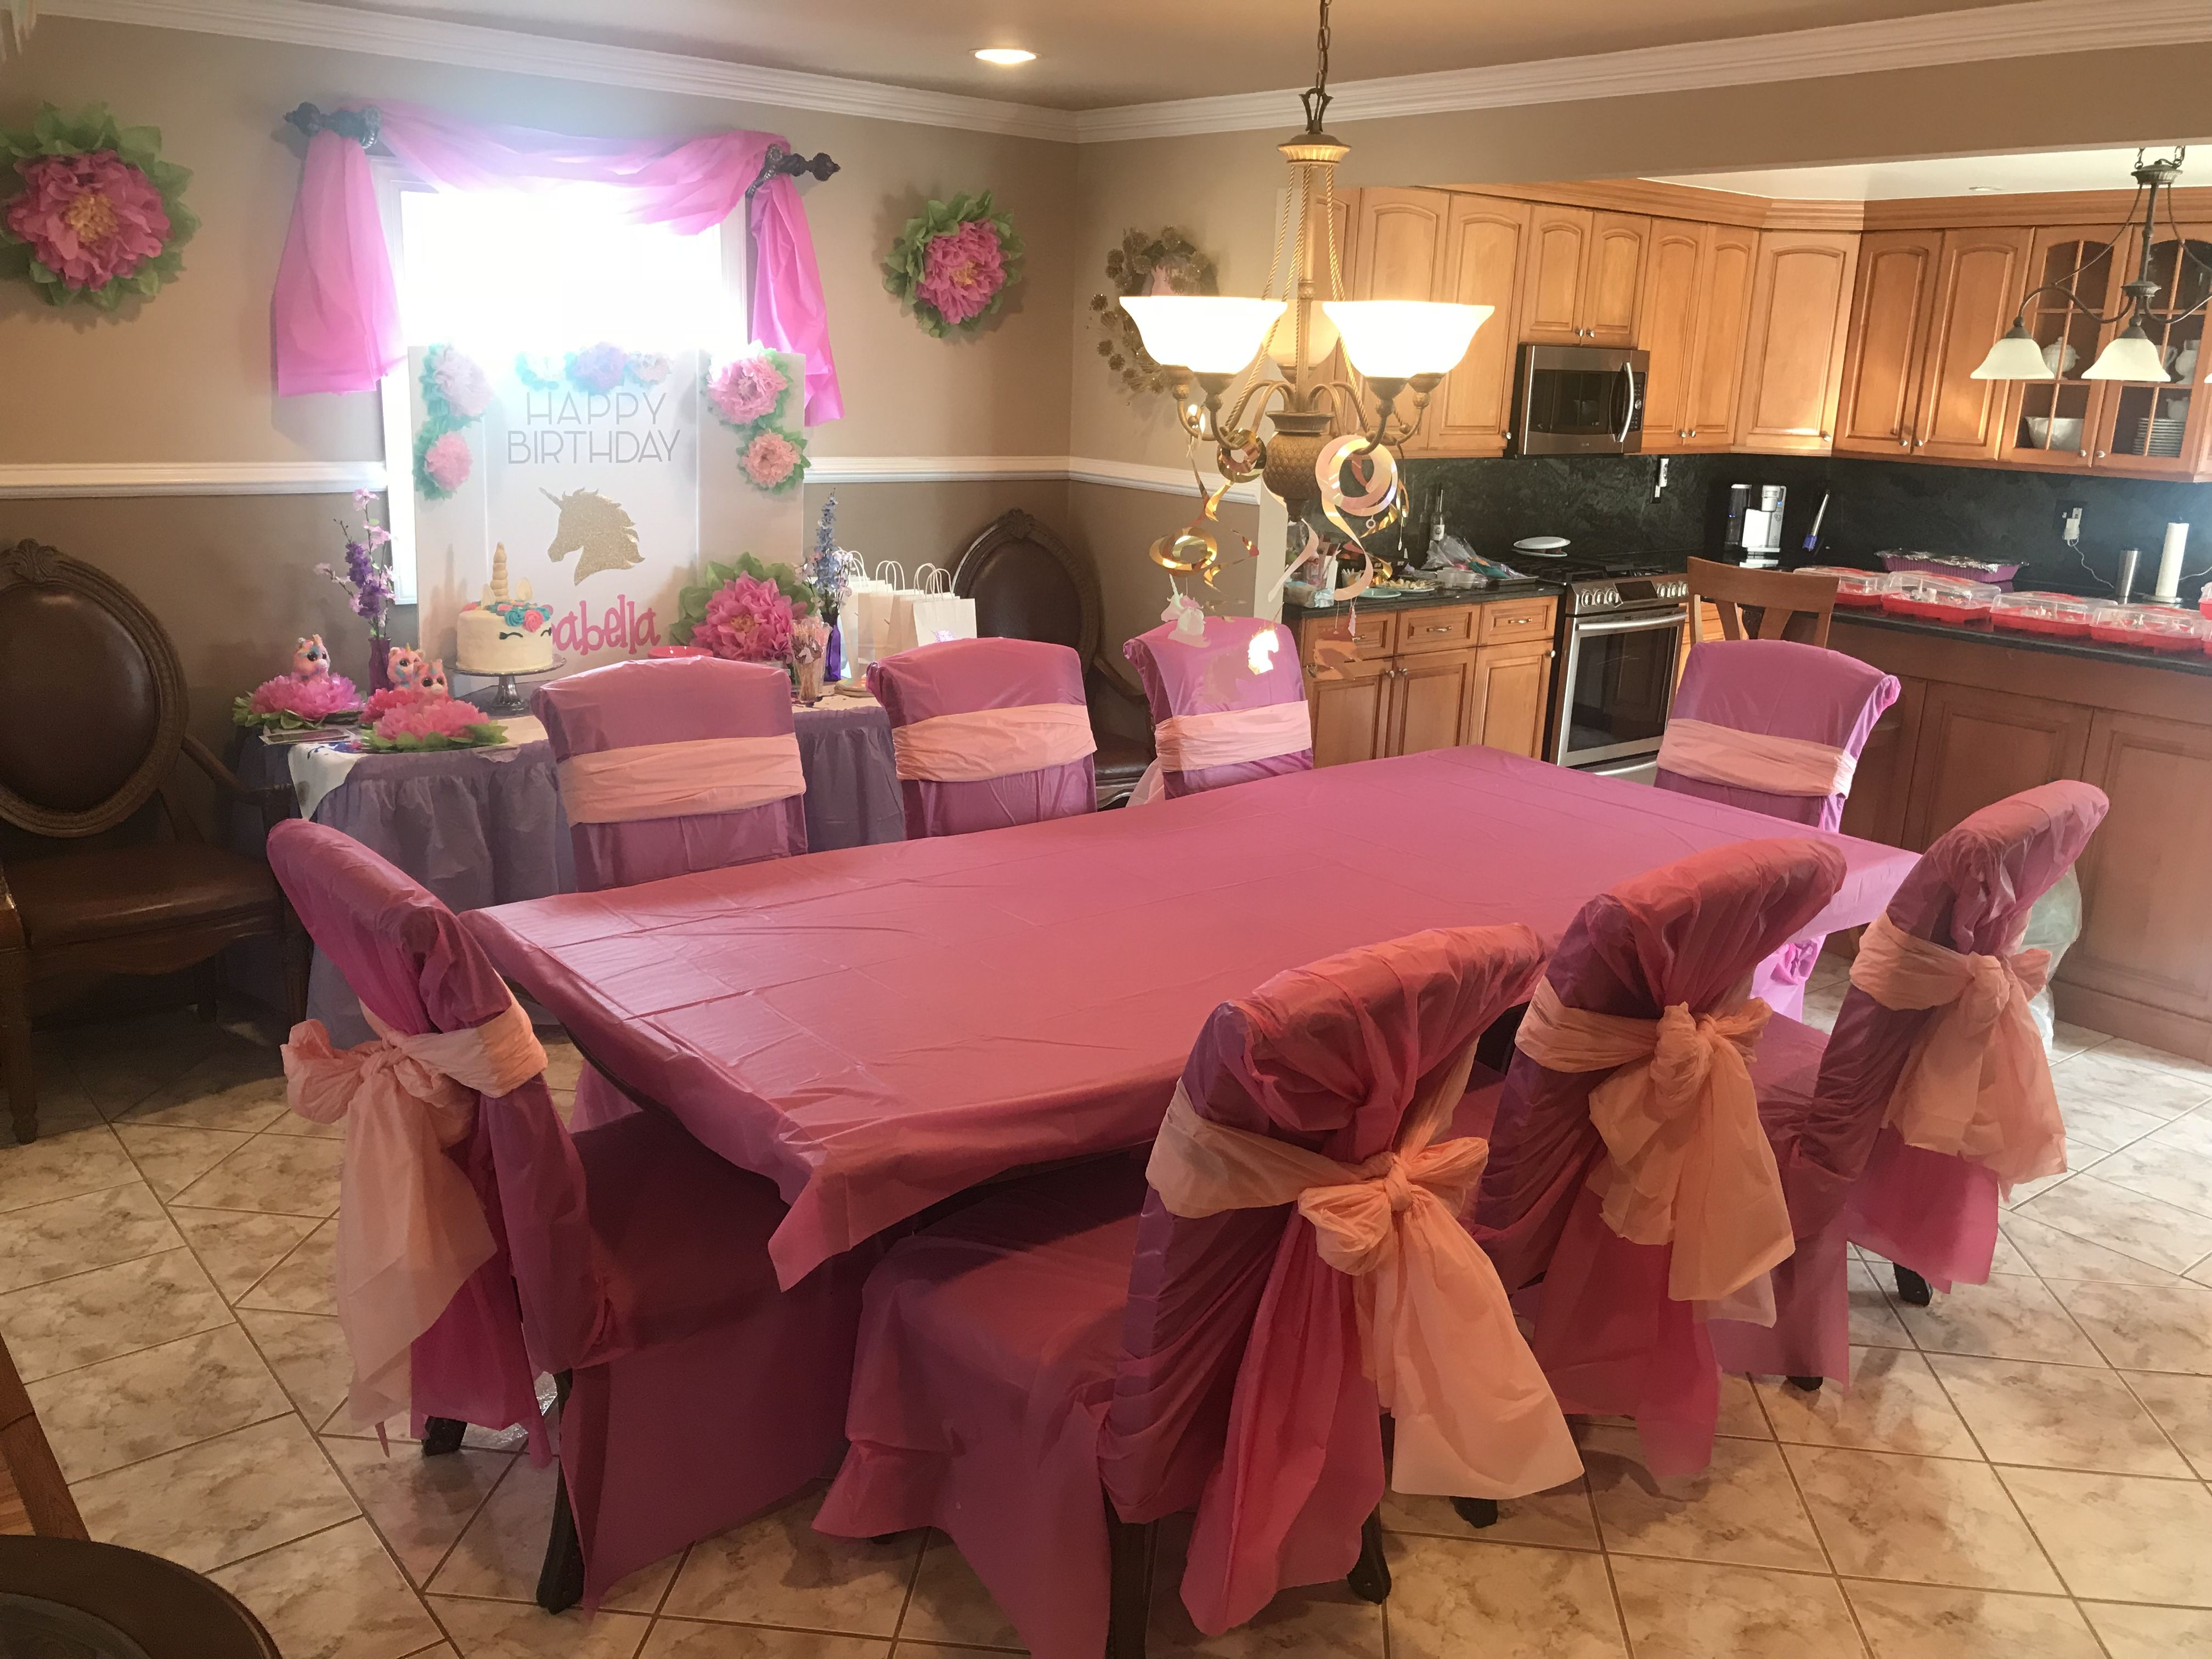 Miraculous Chair Covers Plastic Table Covers Diy Wanted To Cover My Uwap Interior Chair Design Uwaporg